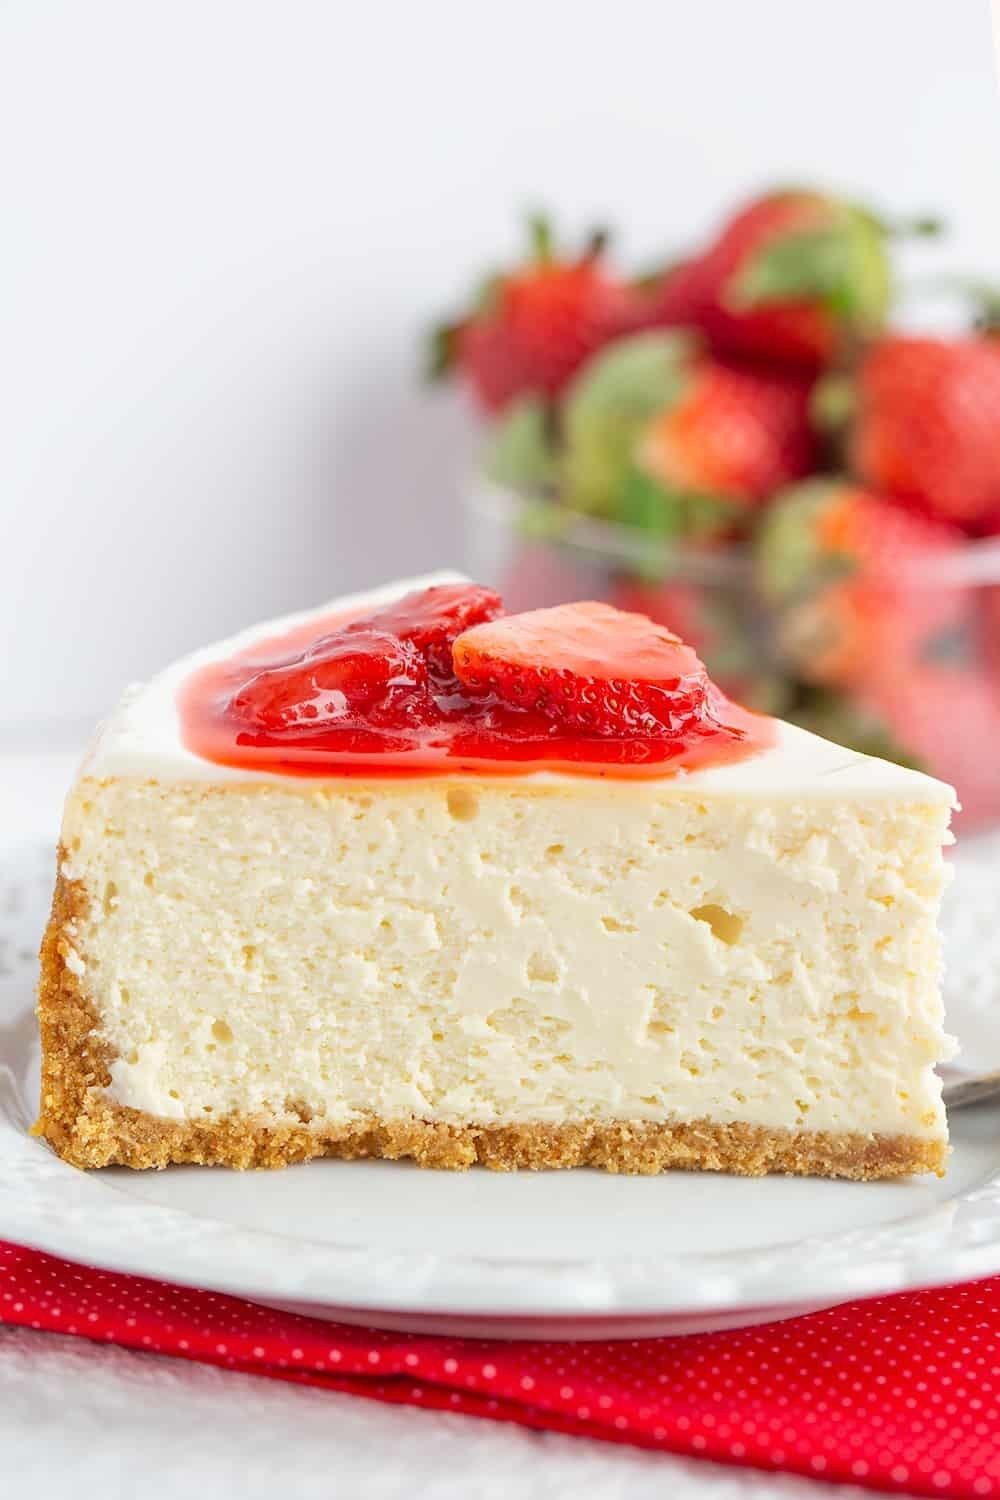 A thick slice of cheesecake with strawberry topping.